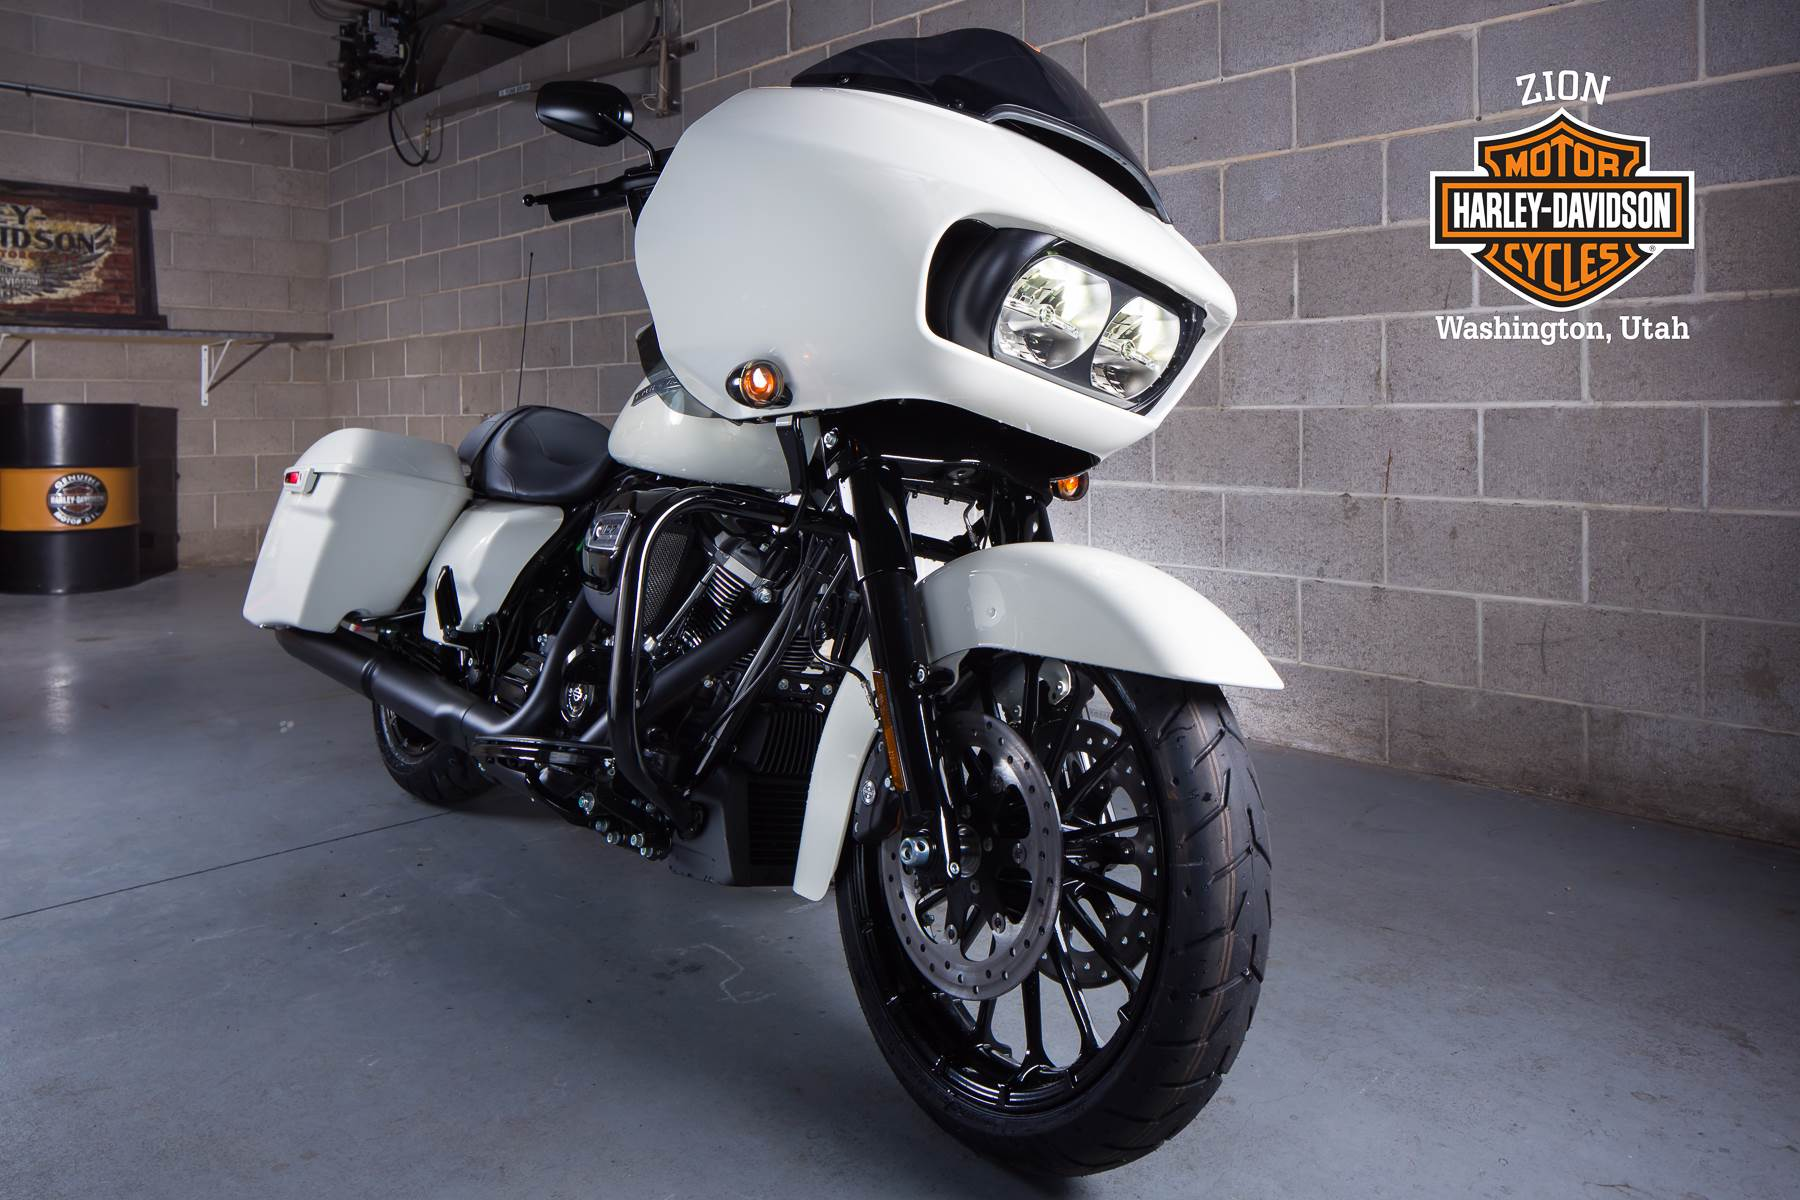 2018 Harley-Davidson Road Glide Special for sale 34295